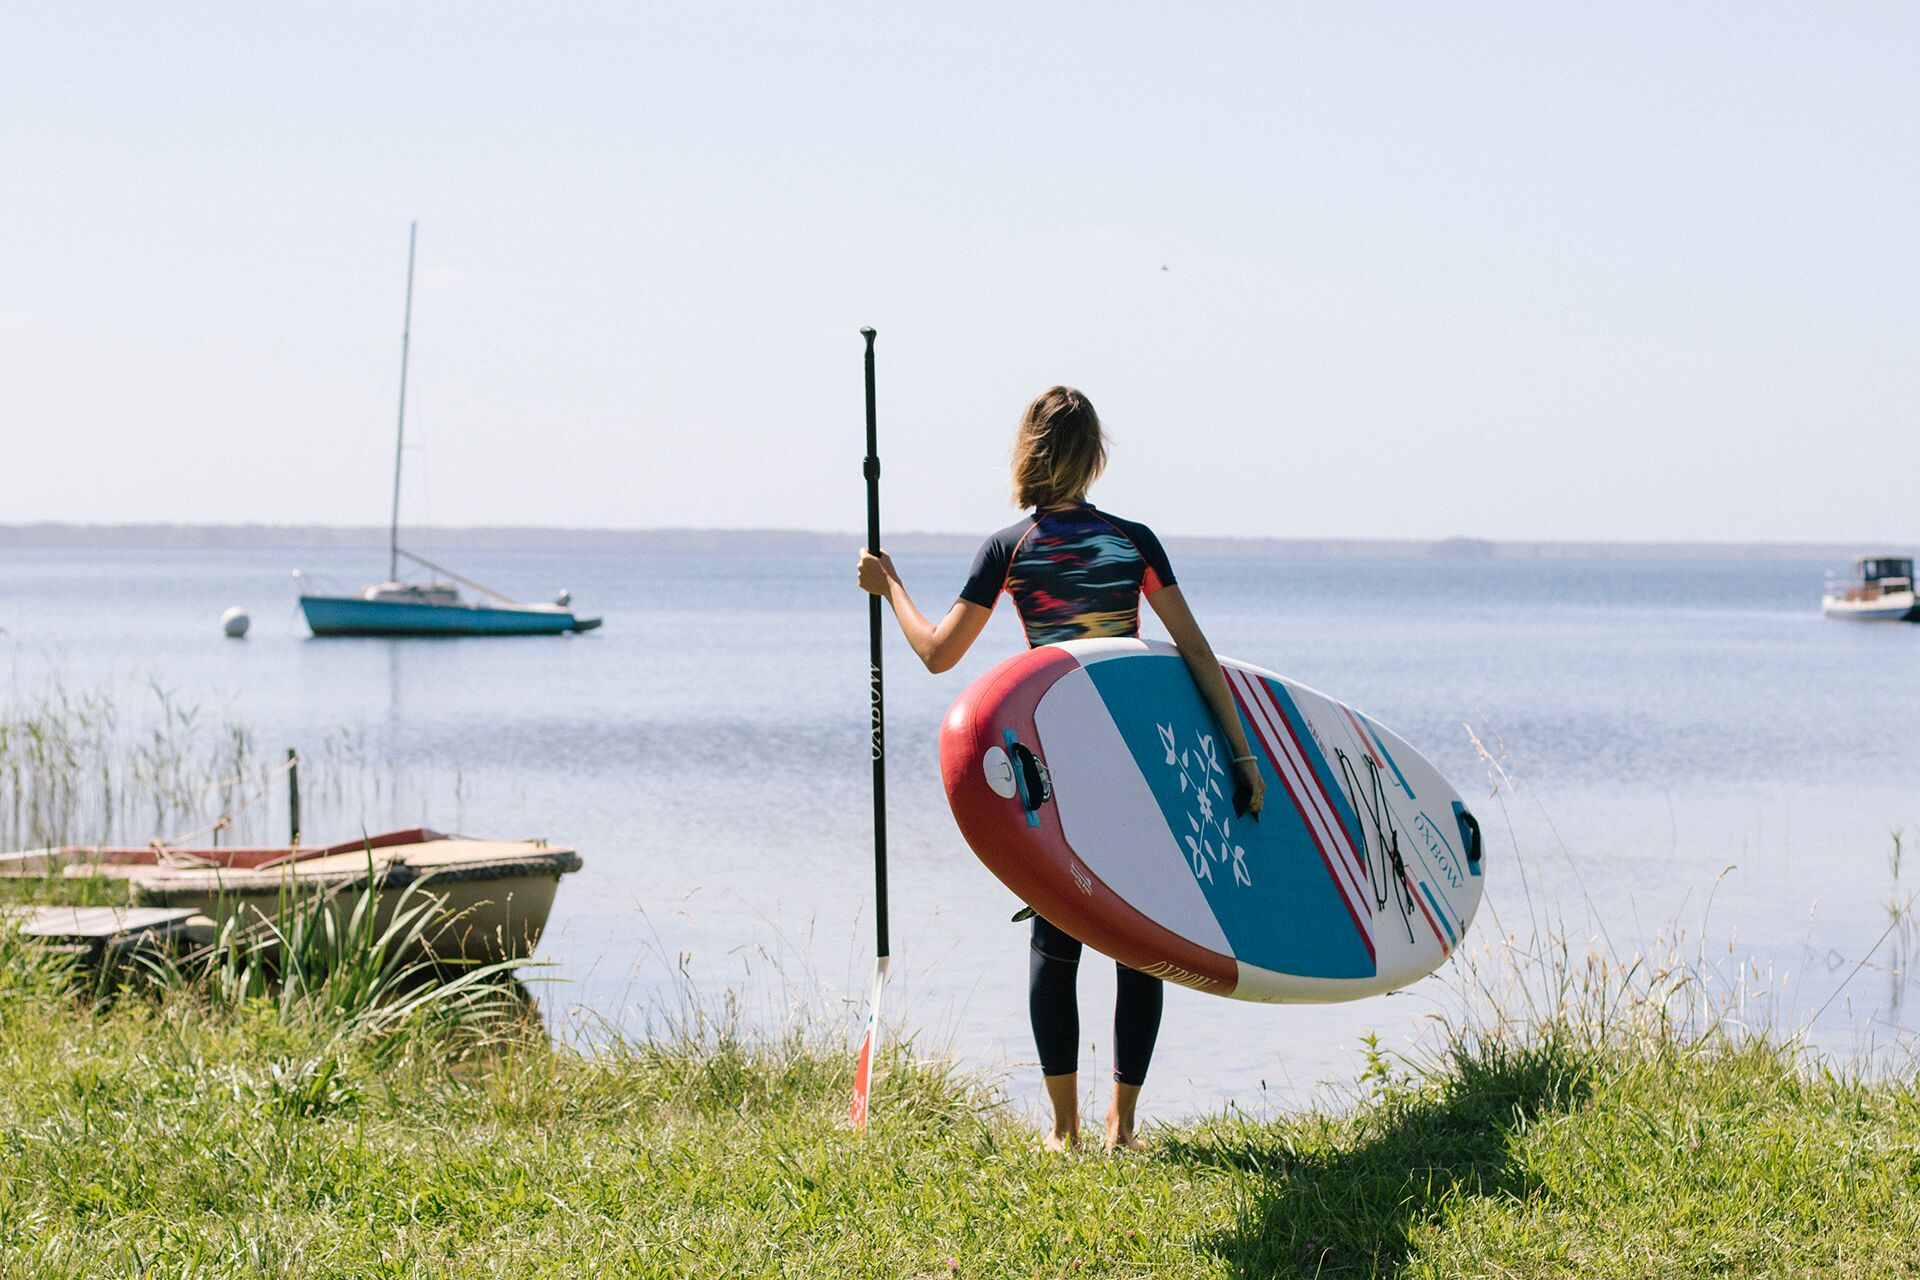 oxbow,surfwear,happyngood,yoga,nutrition,healthy life,healthy food,sup,stand-up paddle,paddle,yoga sup,yoga wear